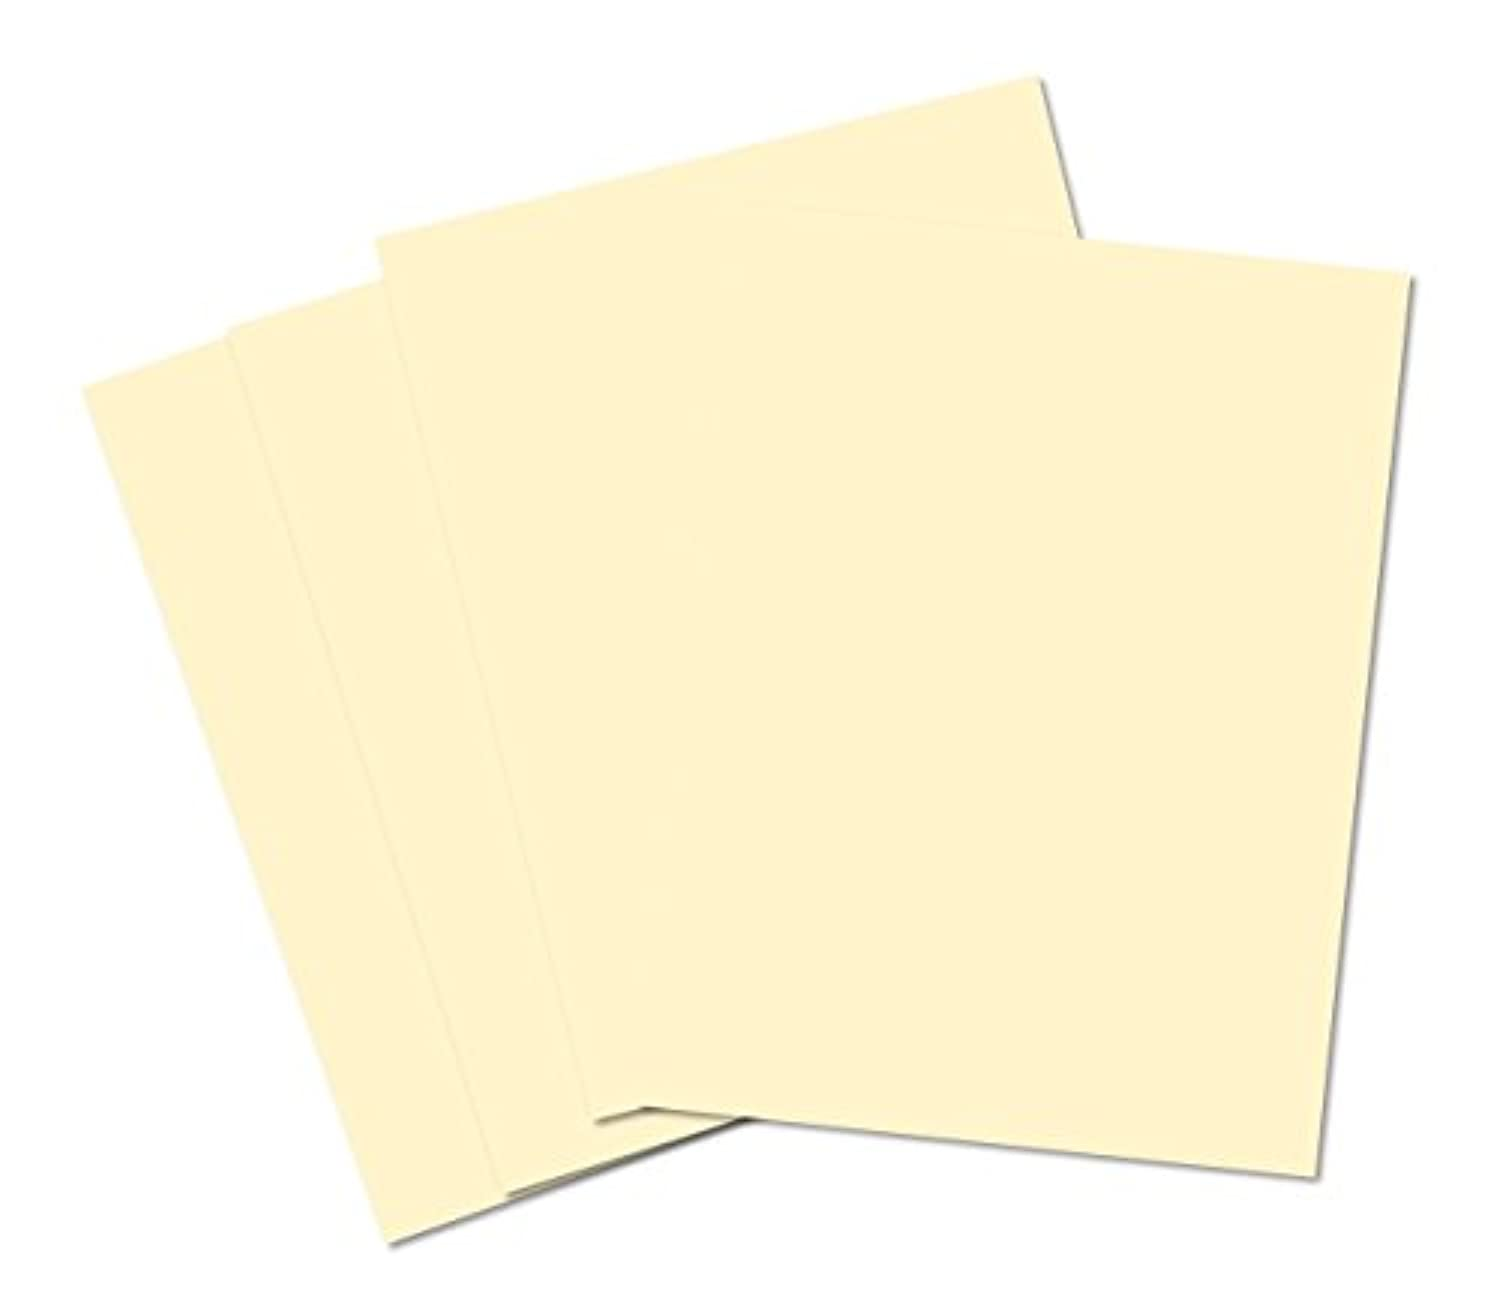 House of Card & Paper A2 220 gsm Coloured Card - Cream (Pack of 50 Sheets)